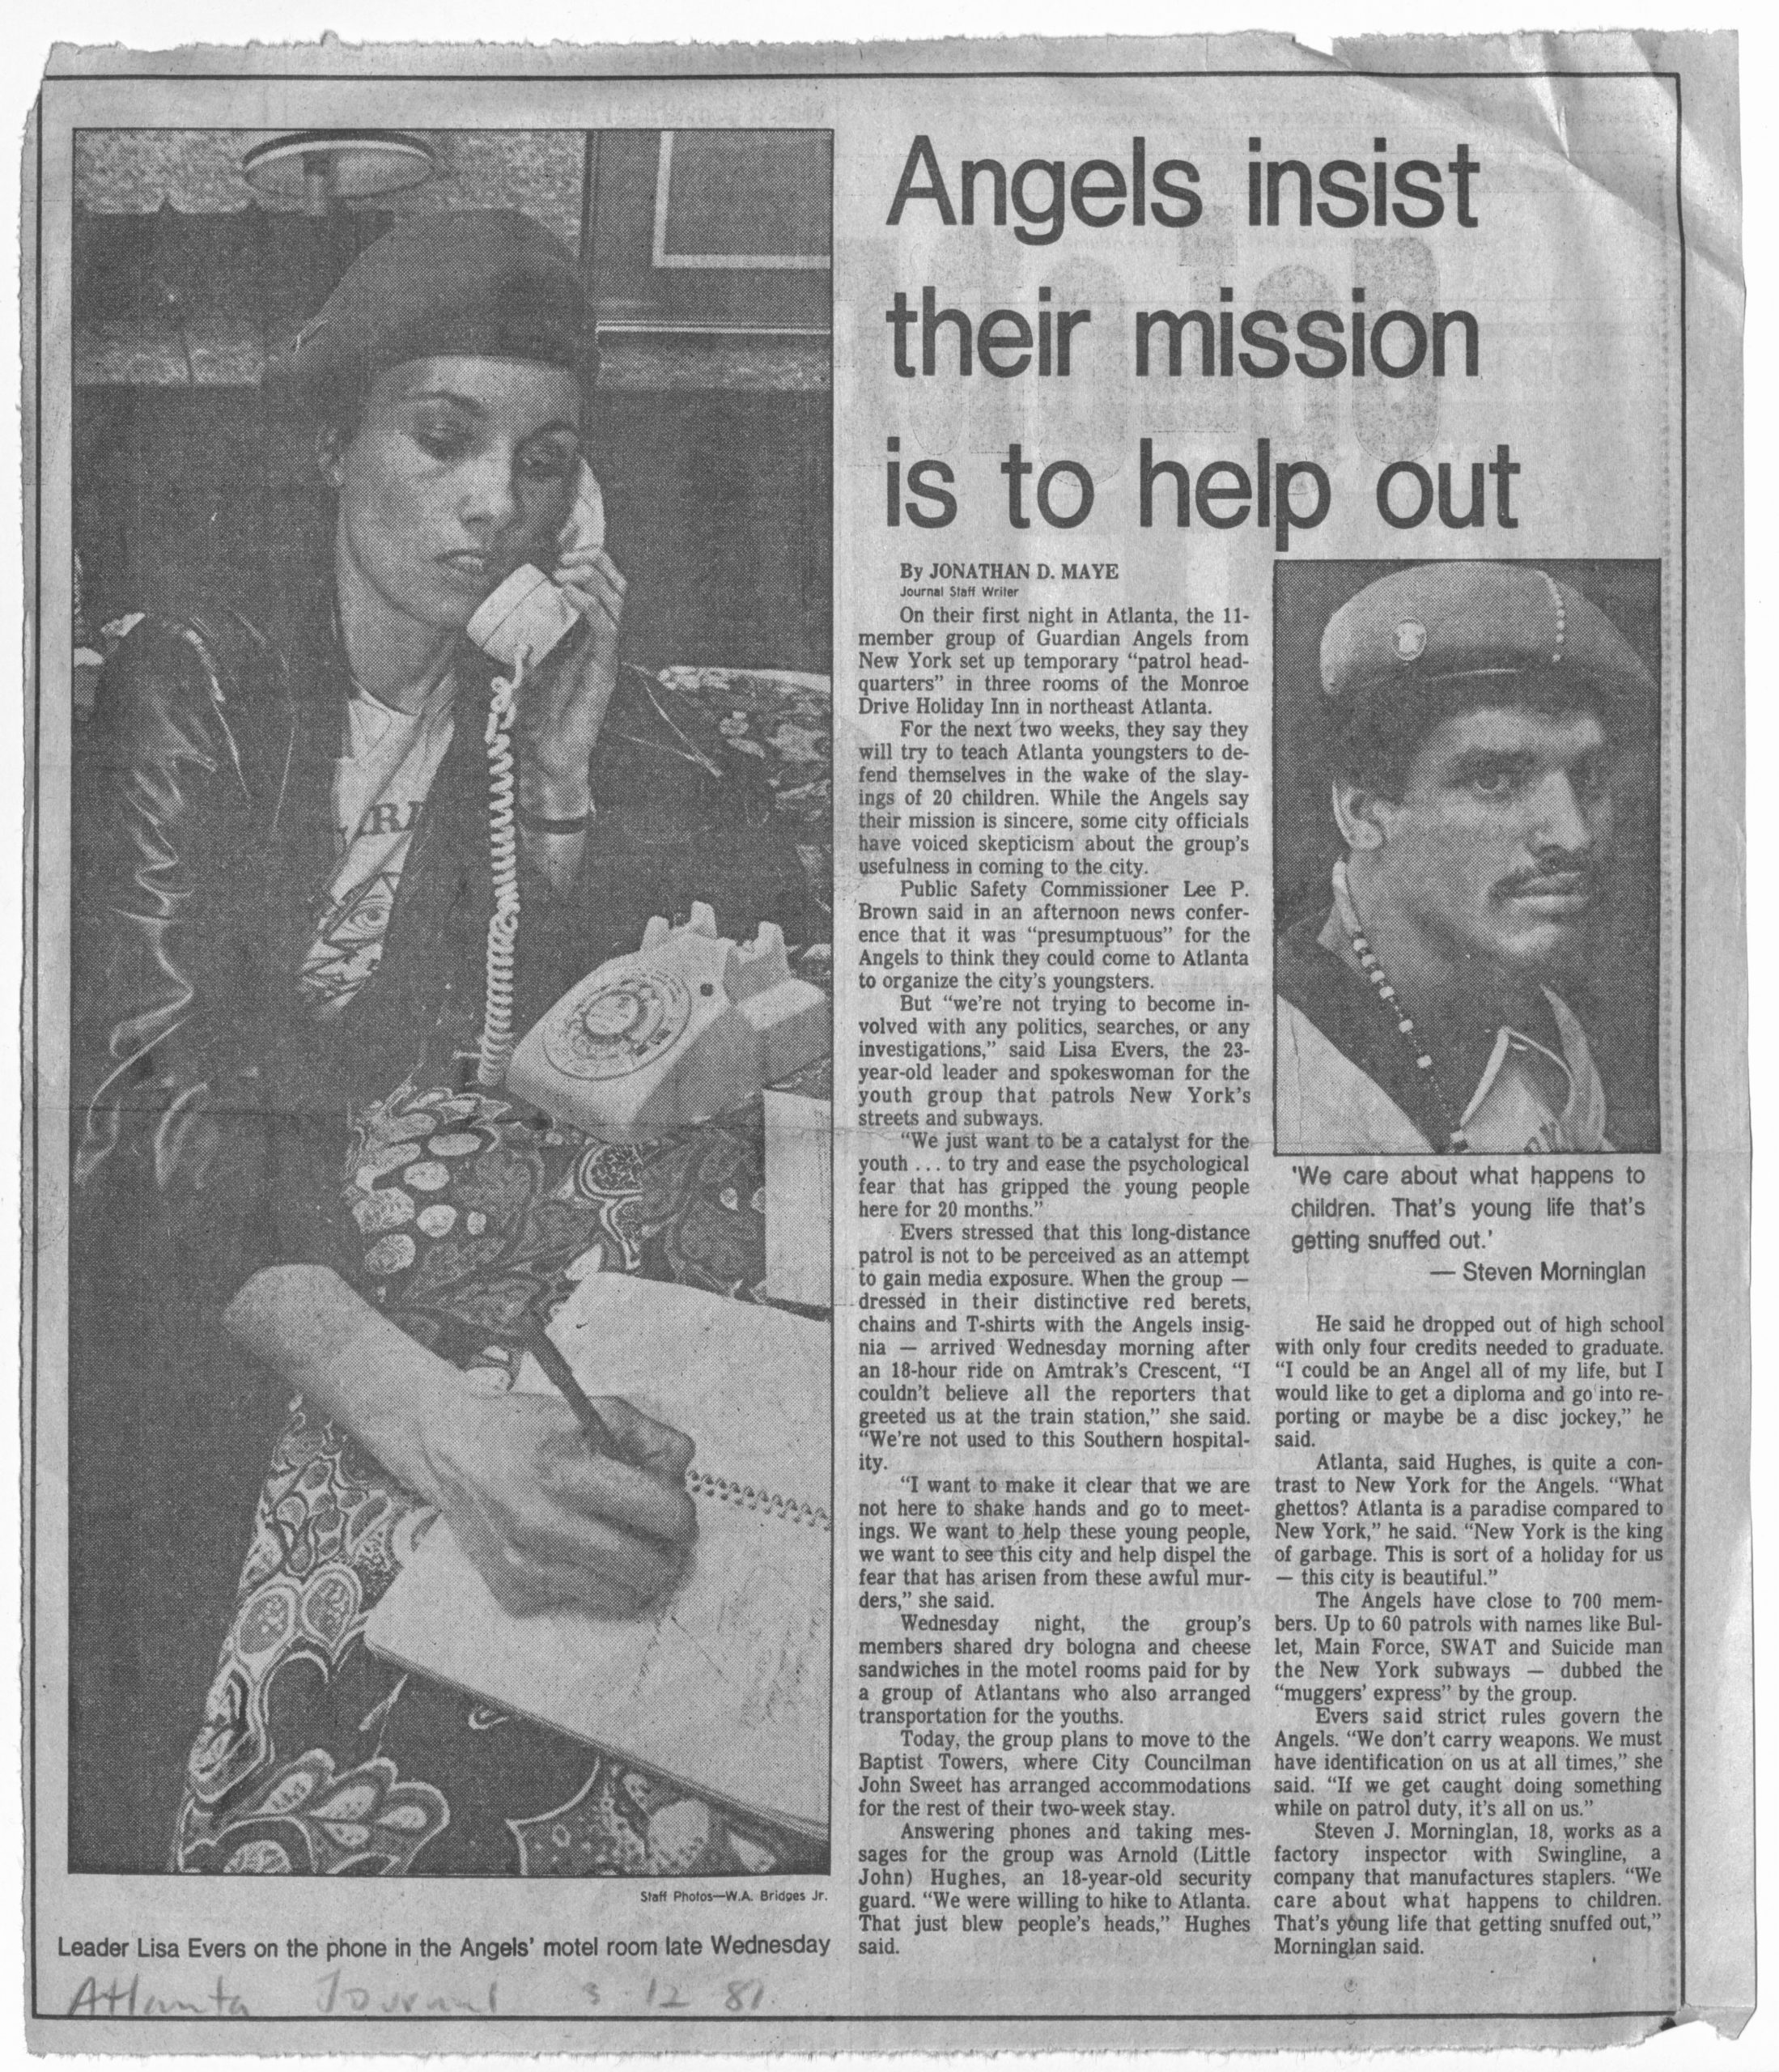 """""""Angels insist their mission is to help out"""" circa 1981, Johnson Publishing Company clipping files collection"""